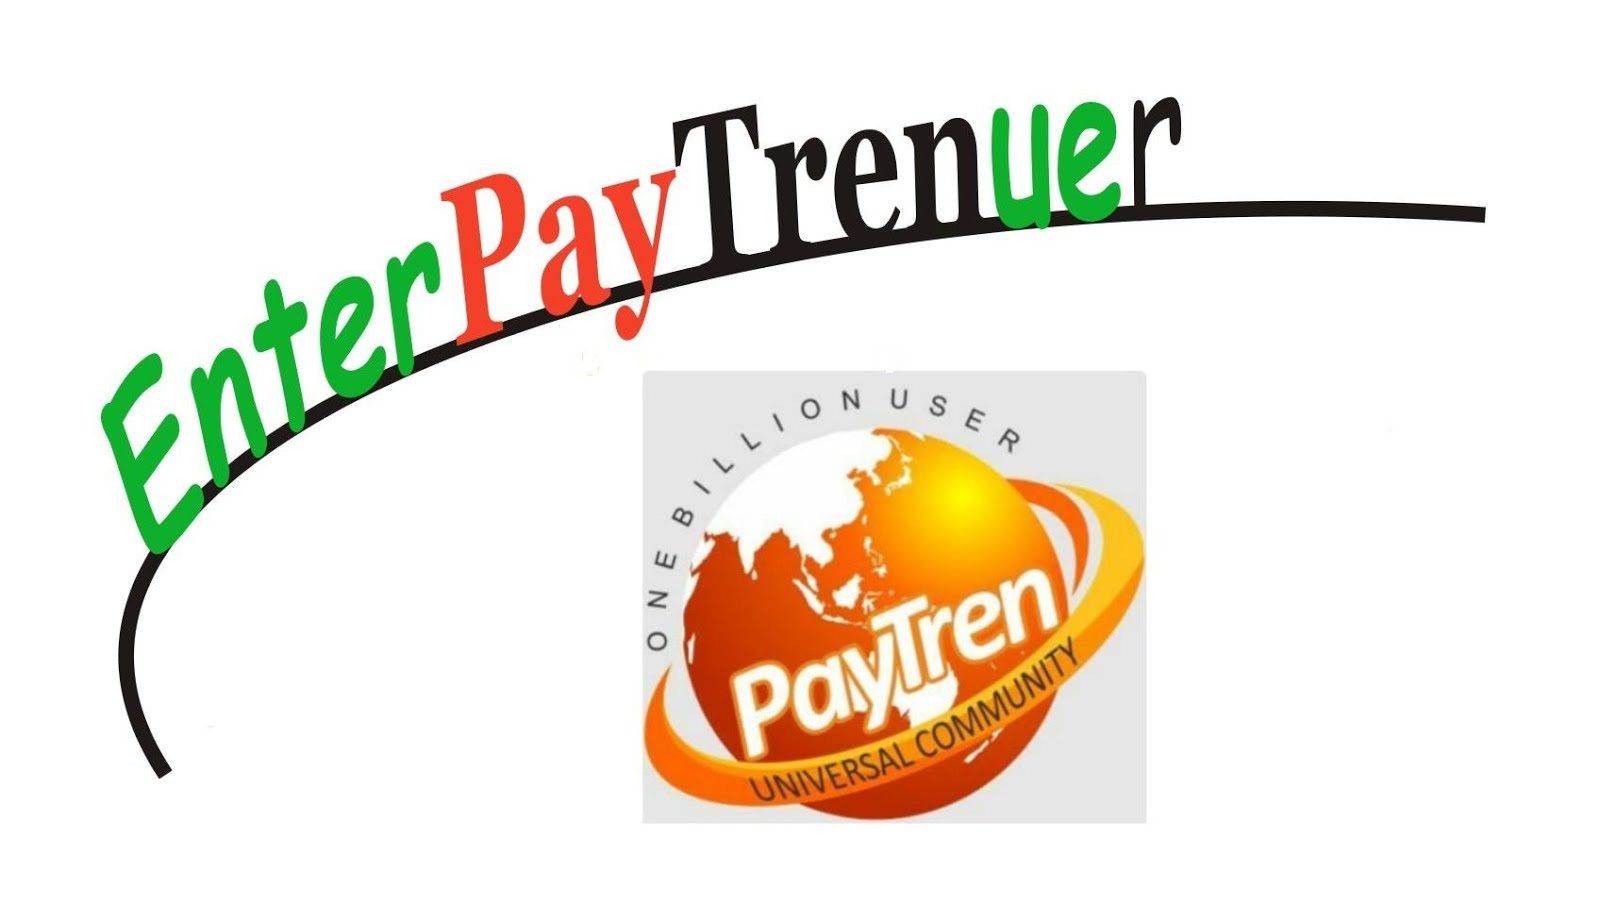 EnterPayTrenuer